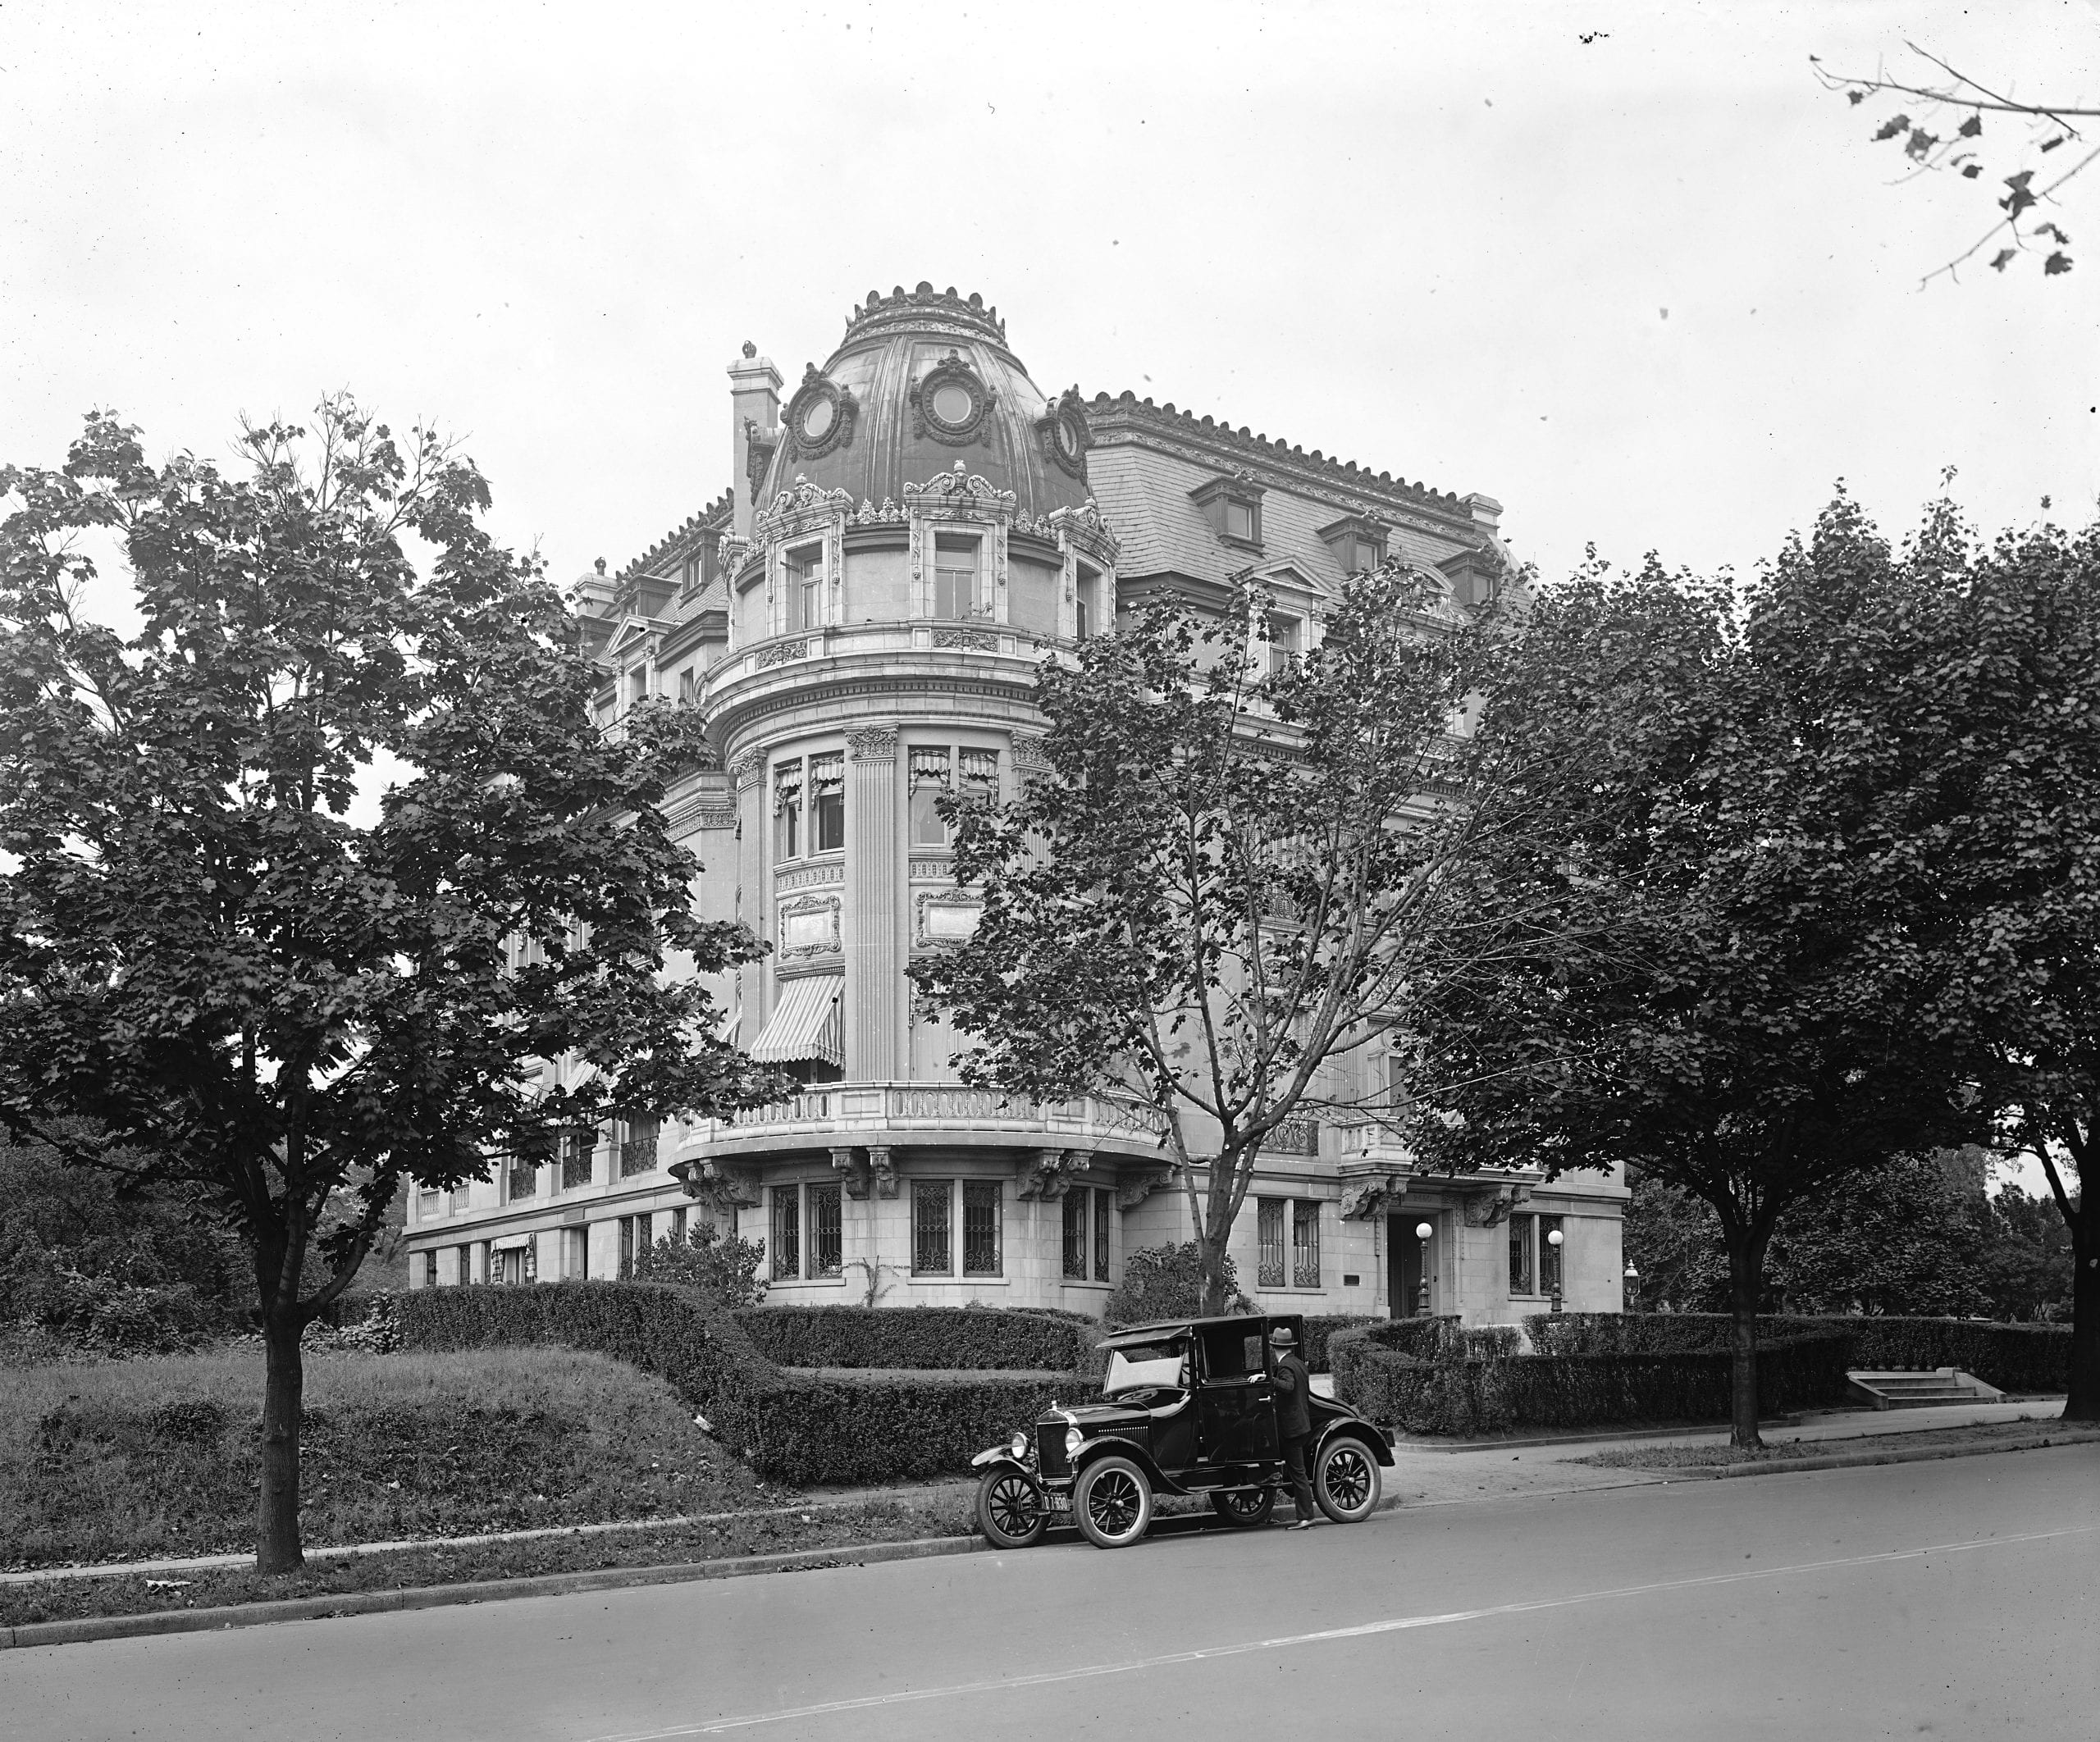 Ford motor car in front of the French Embassy